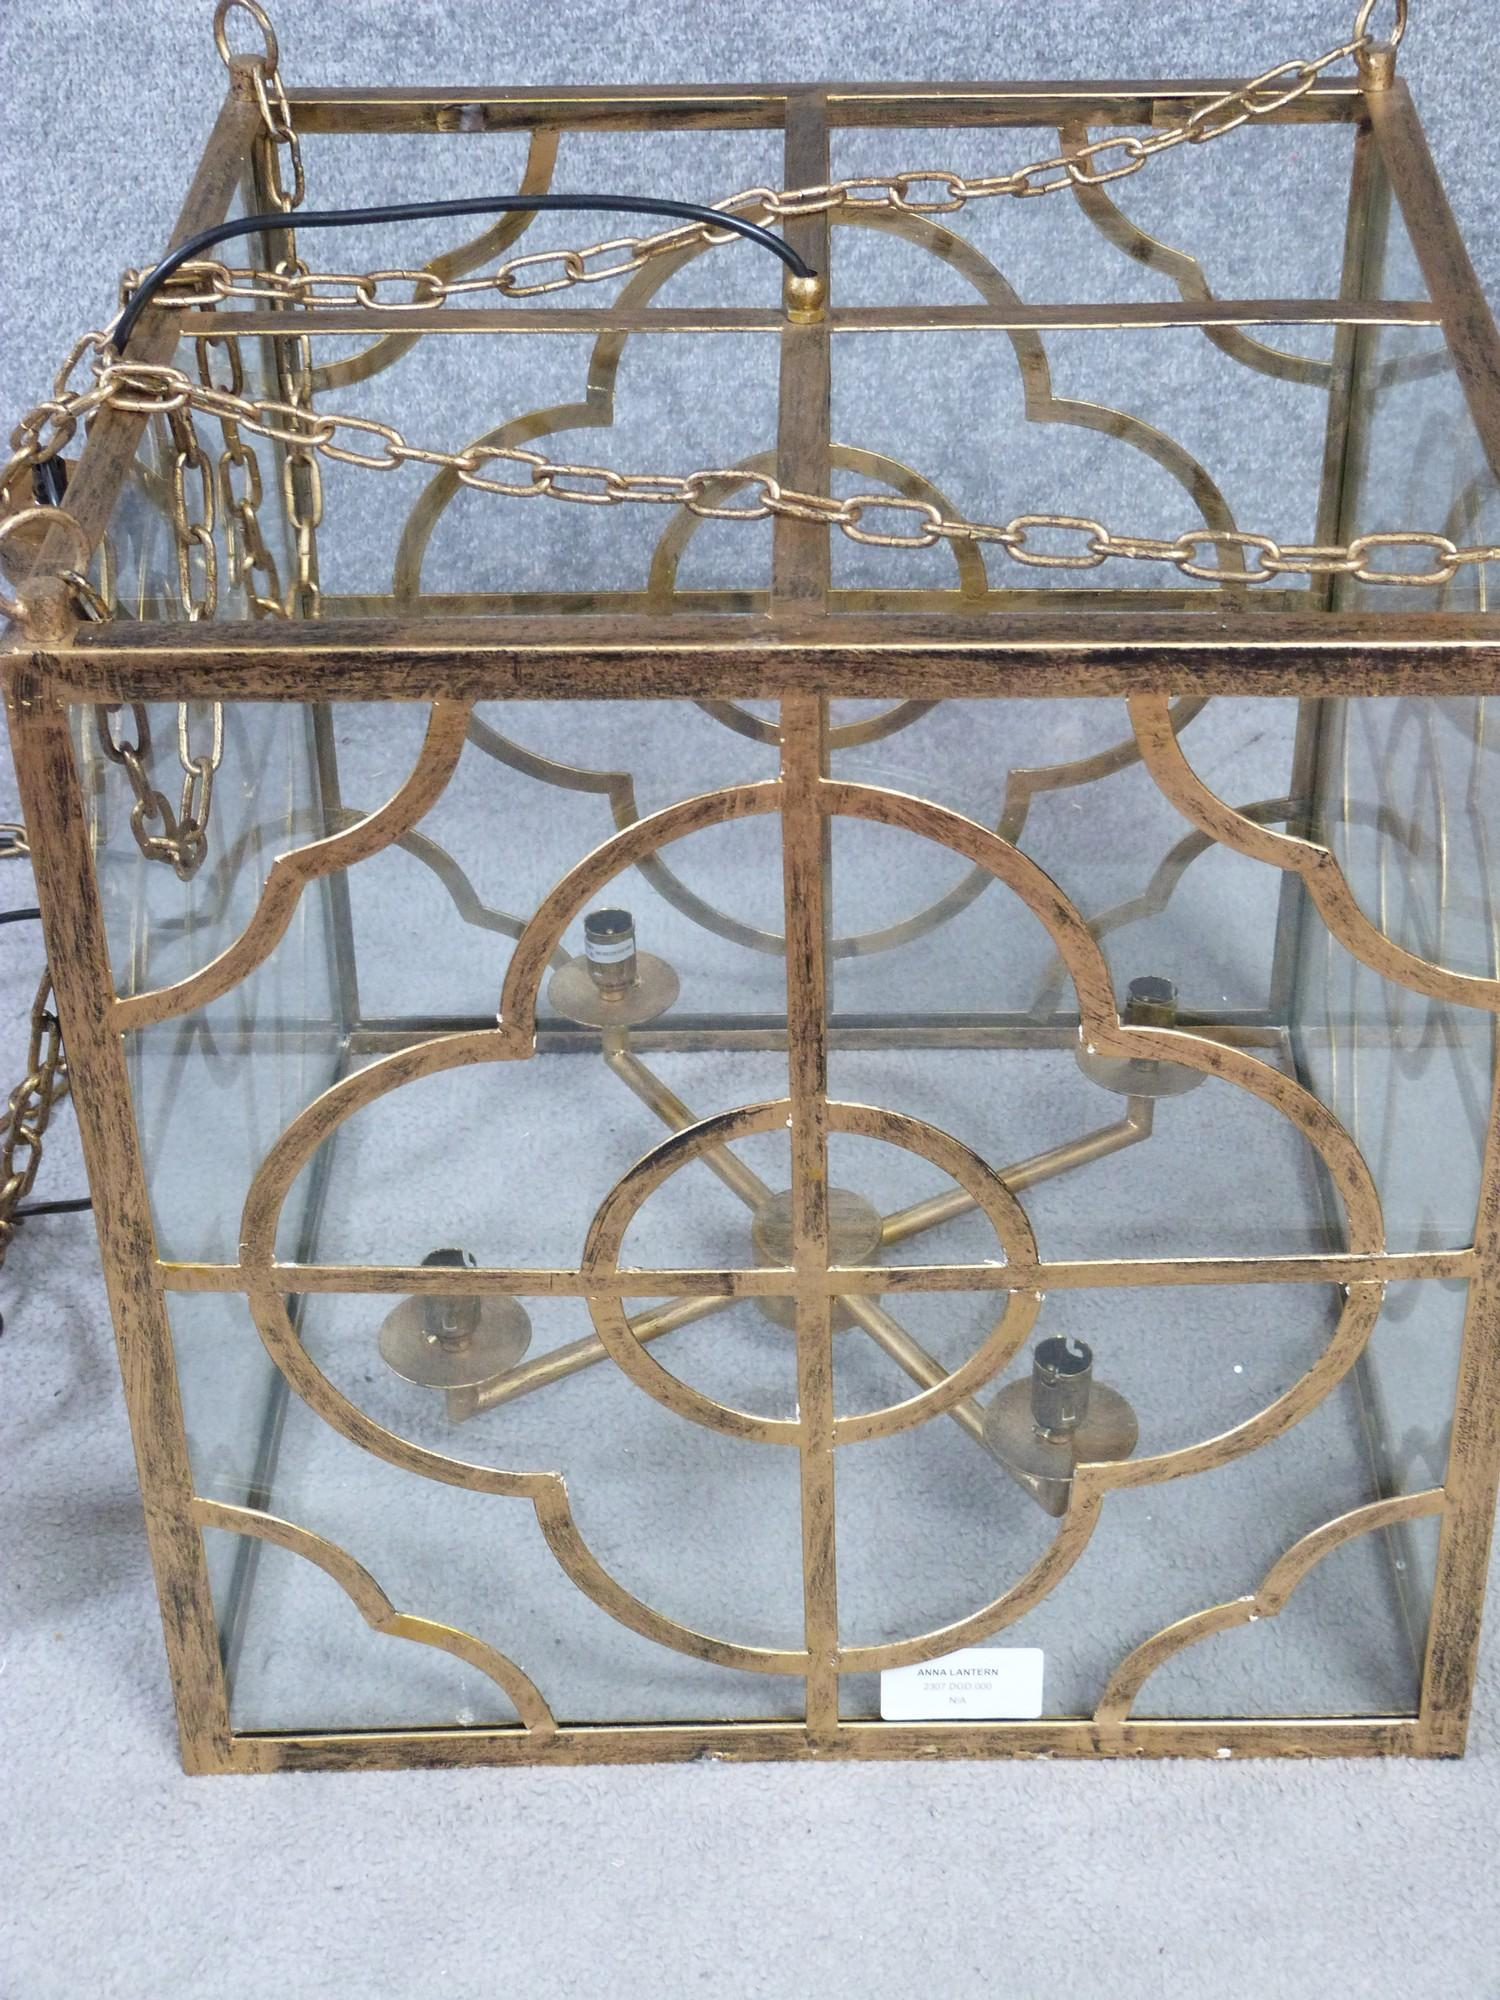 A Julian Chichester gold 'Anna' design pierced metal hanging ceiling lantern with stylised floral - Image 7 of 8